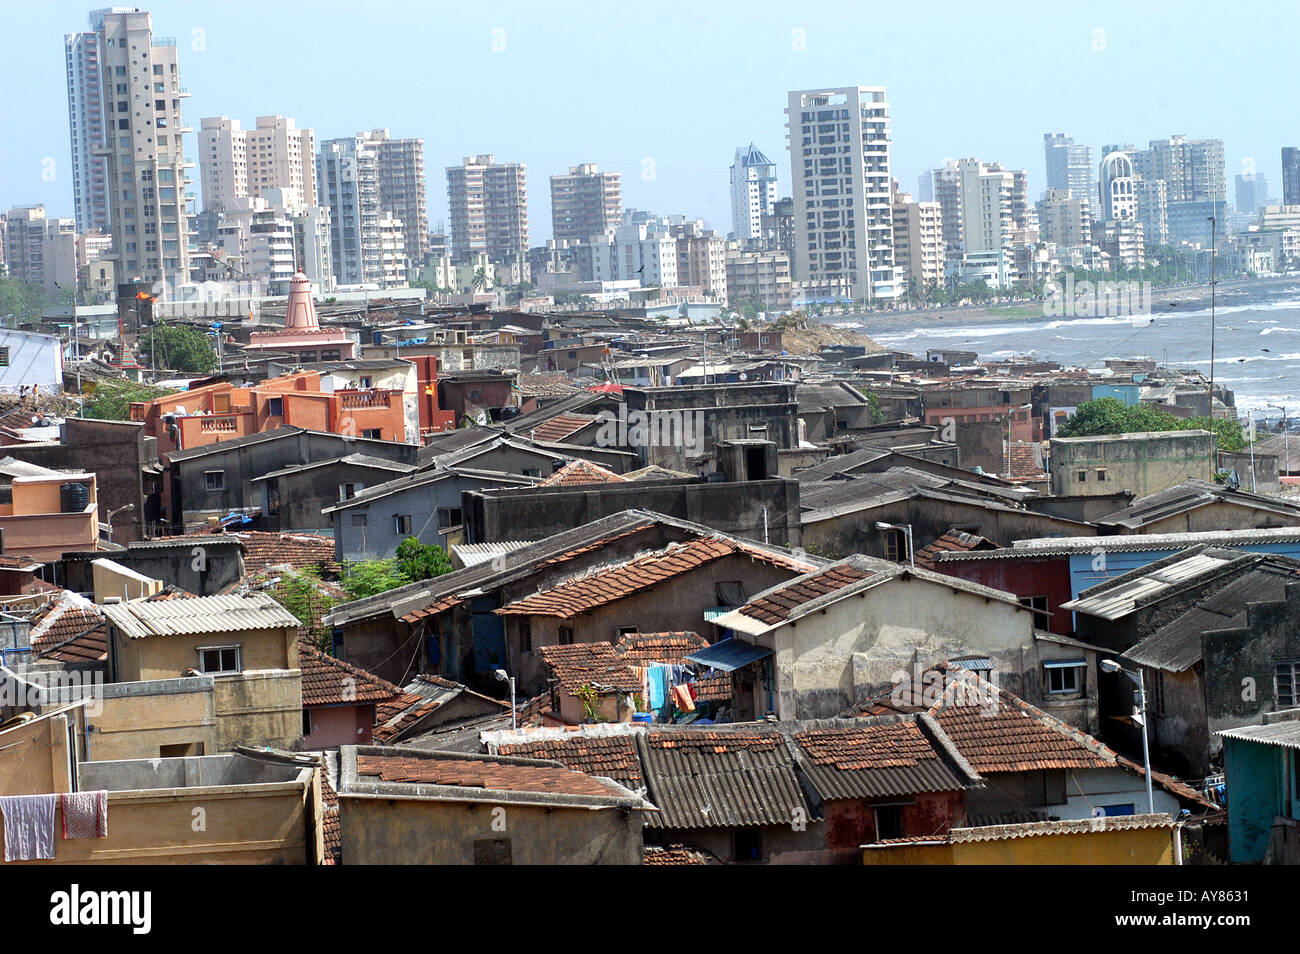 Indian Cityscape Rich Poor Contrast Housing Of Wealthy